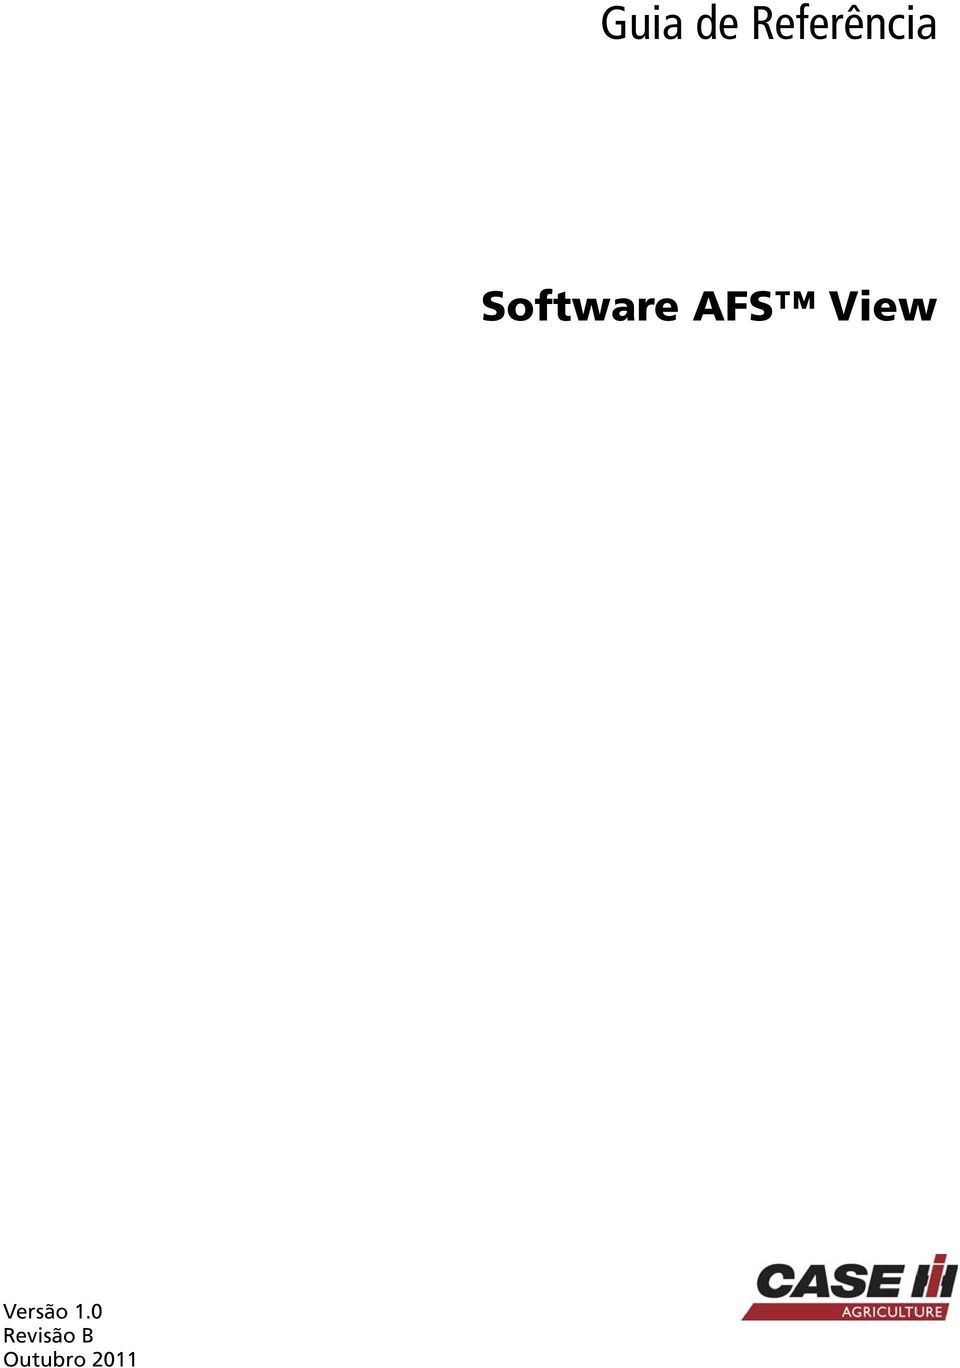 Software AFS View